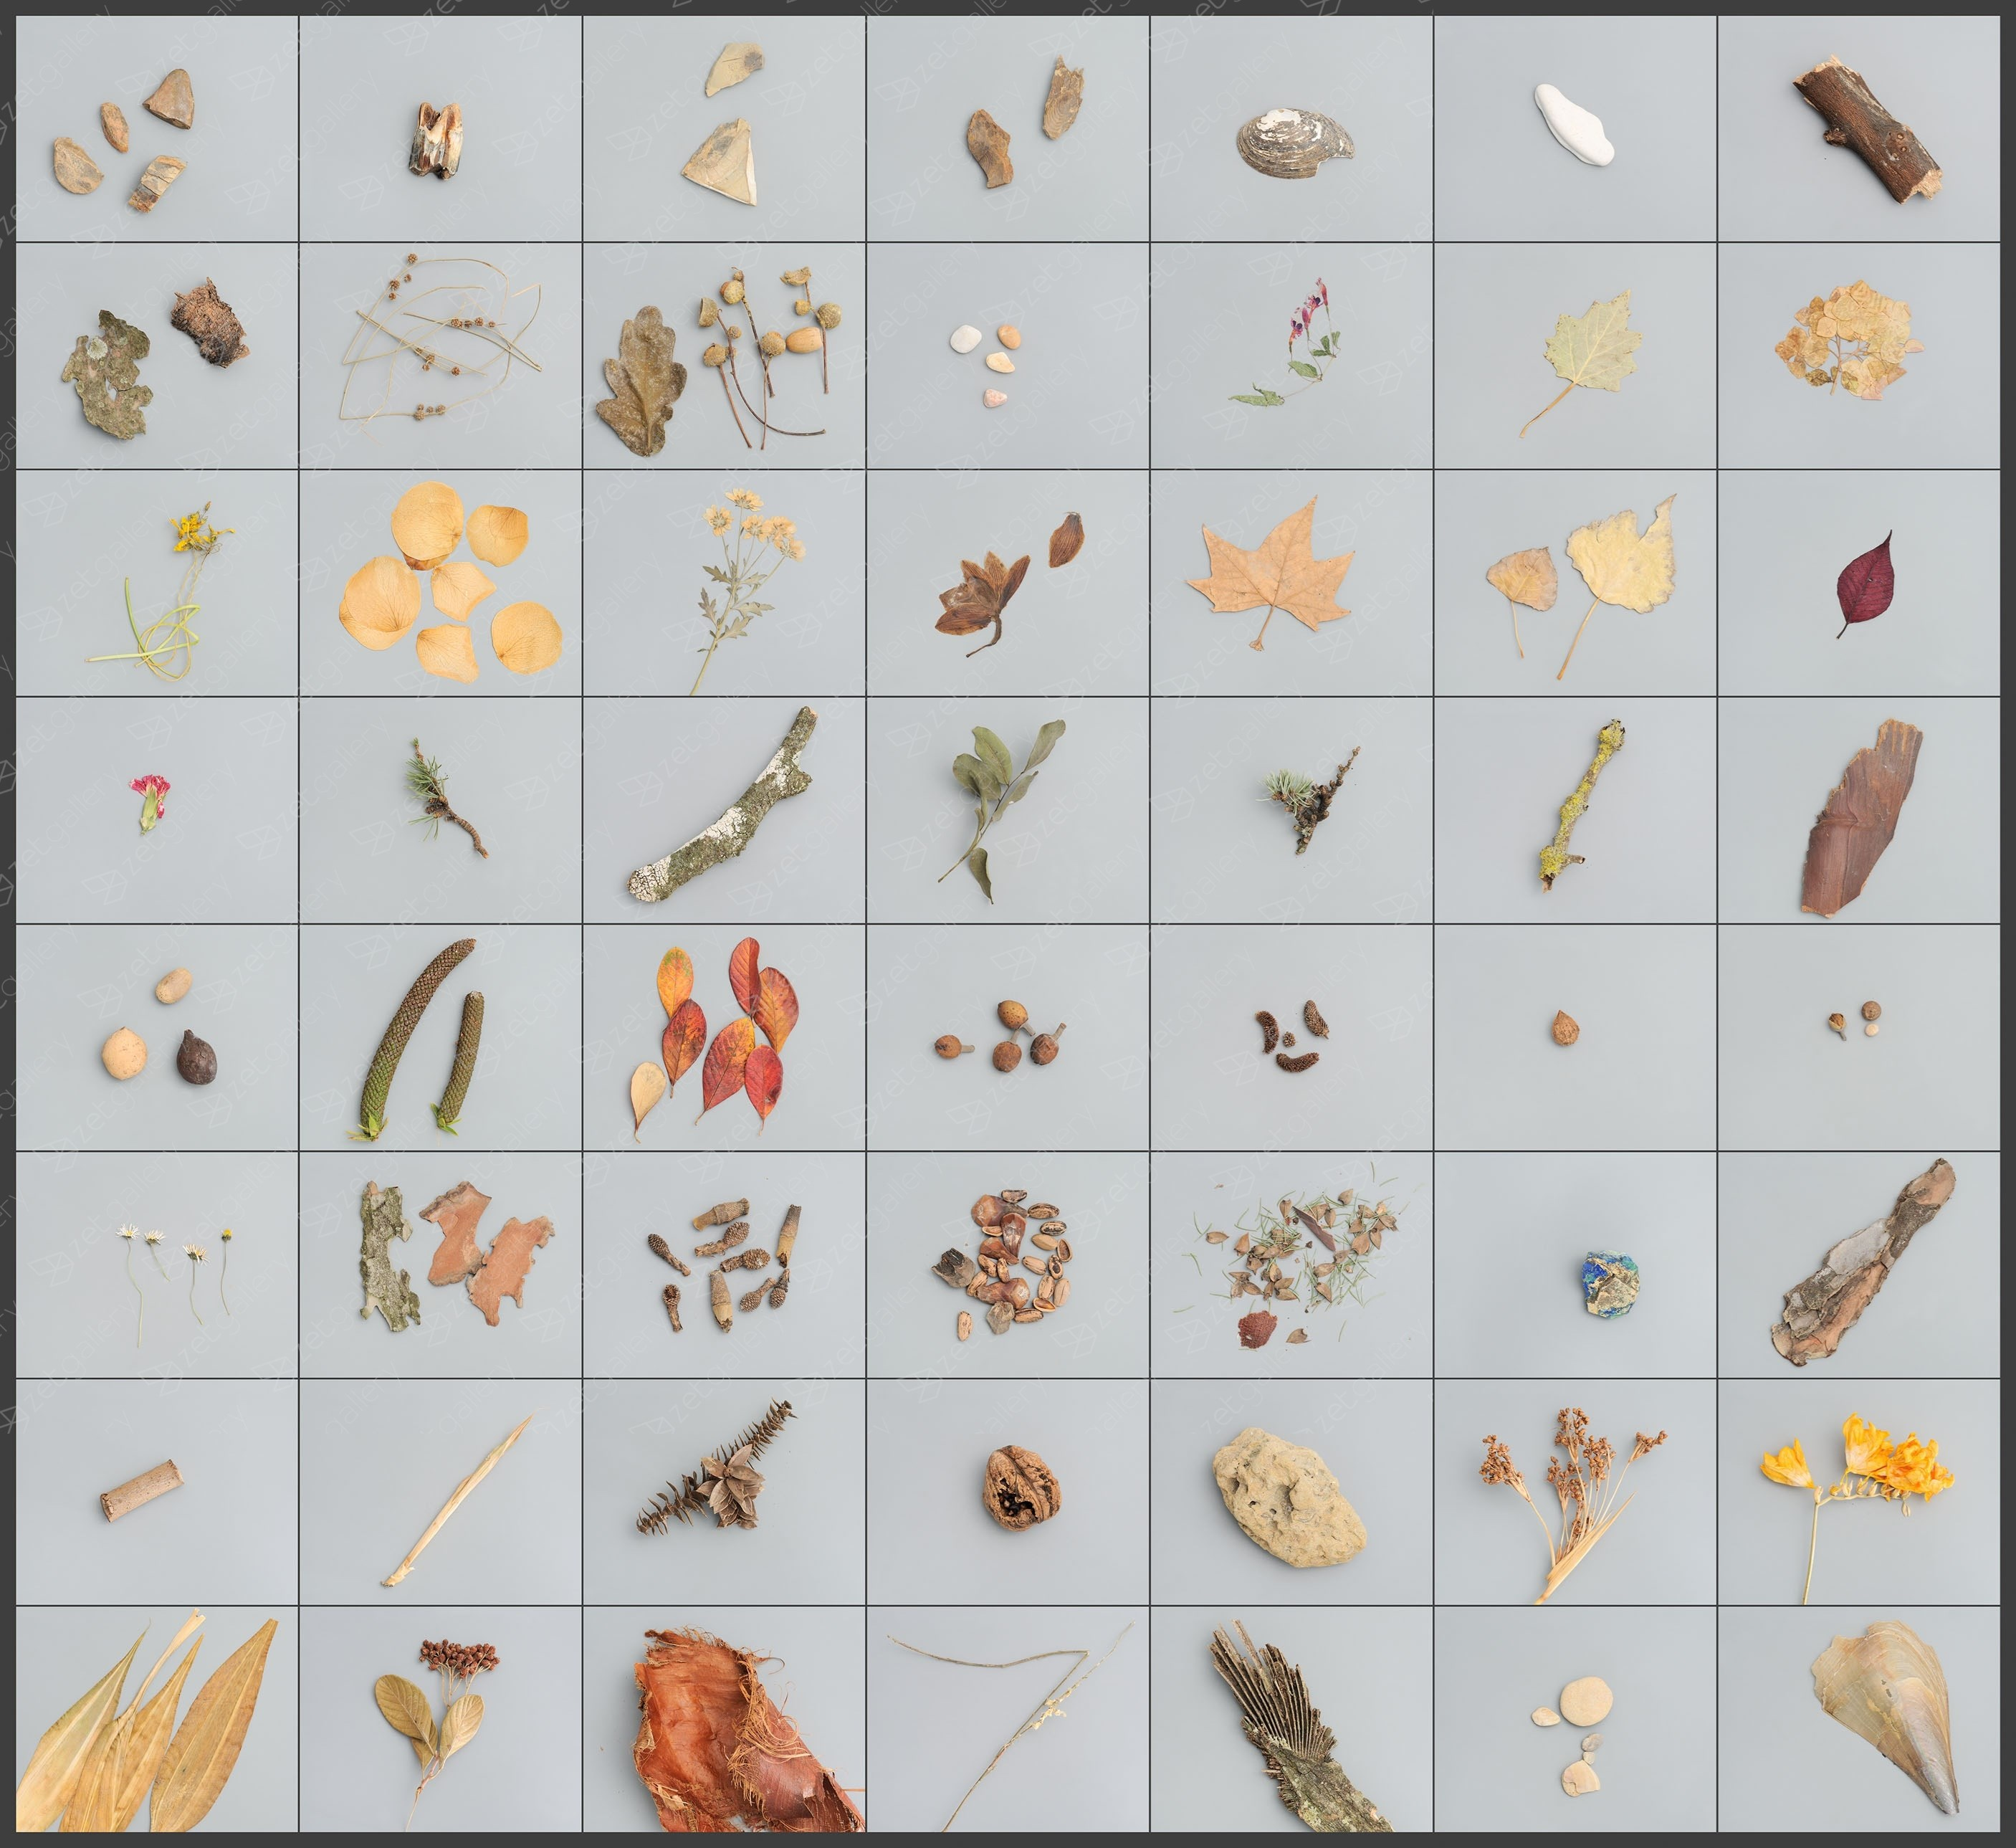 55 field collections of natural elements + 1(Portugal), original Nature Digital Photography by António Coelho